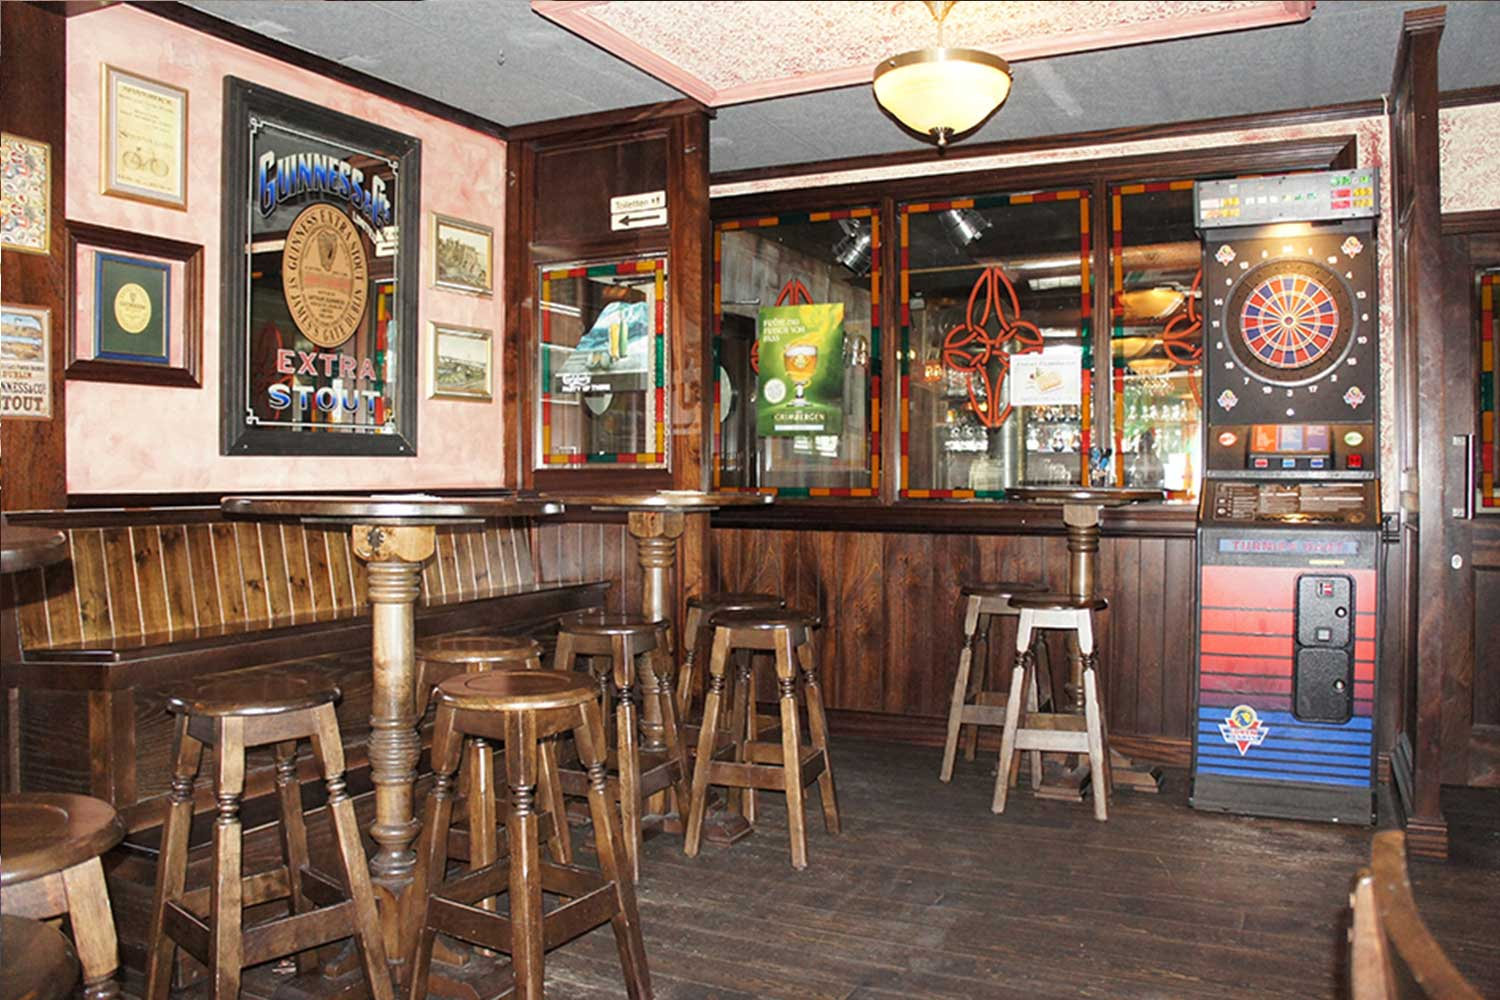 Duffy O'Toole's Irish pub design - interior view of lightwood high tables and stools and traditional Irish mirrors with Guinness logo and Celtic emblems.